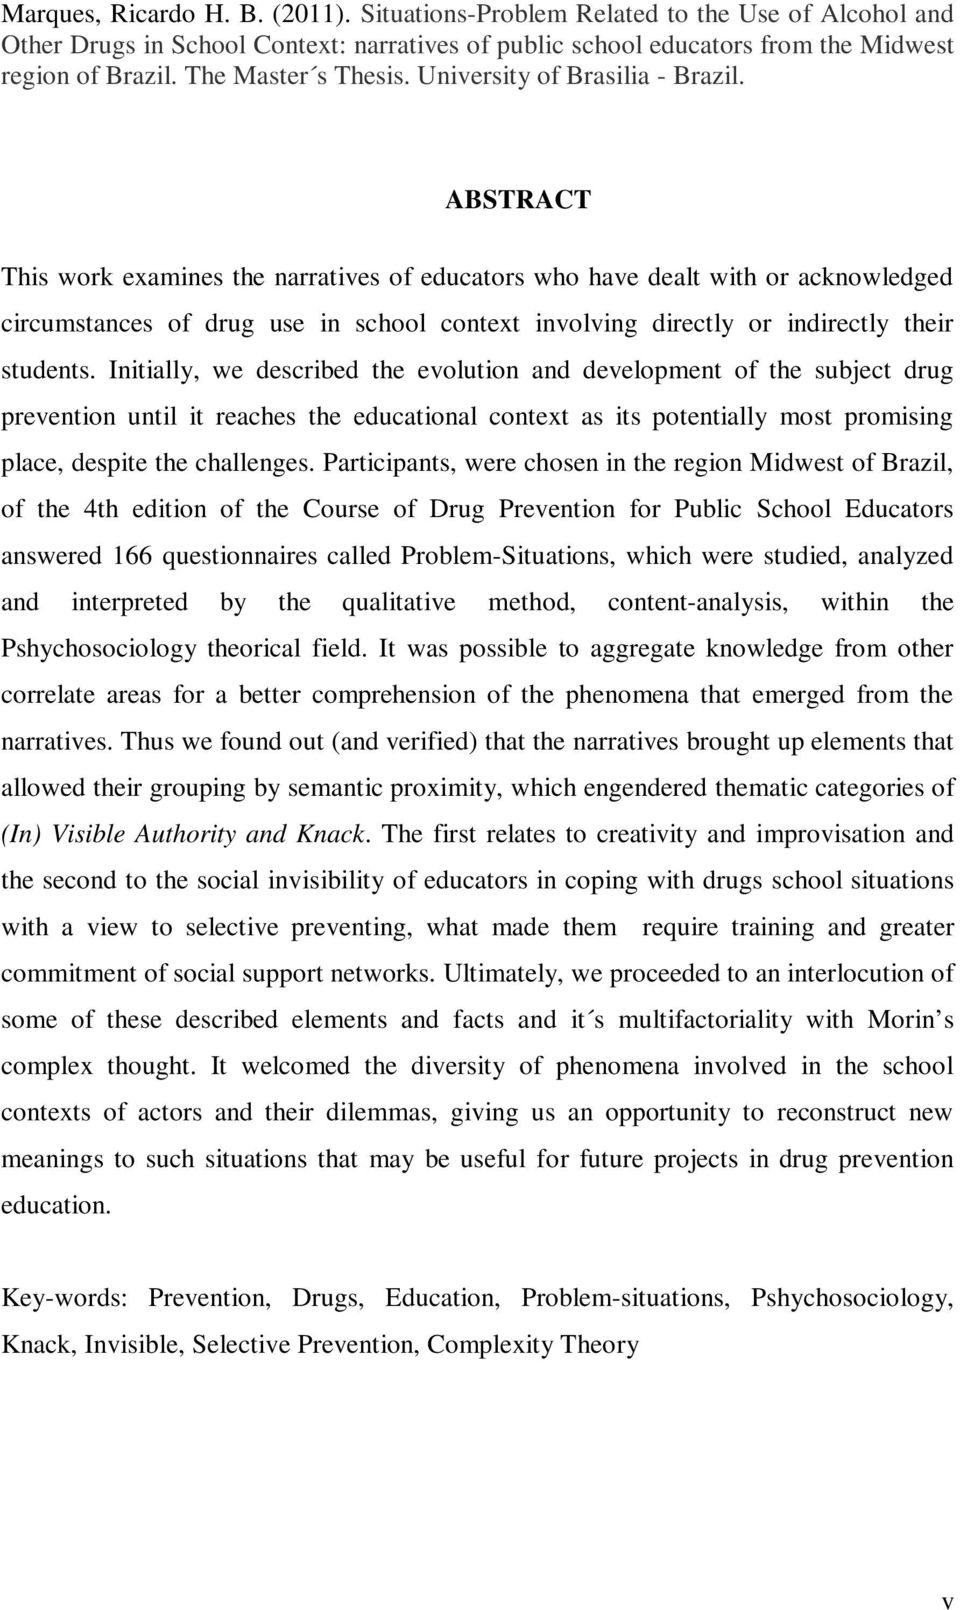 ABSTRACT This work examines the narratives of educators who have dealt with or acknowledged circumstances of drug use in school context involving directly or indirectly their students.